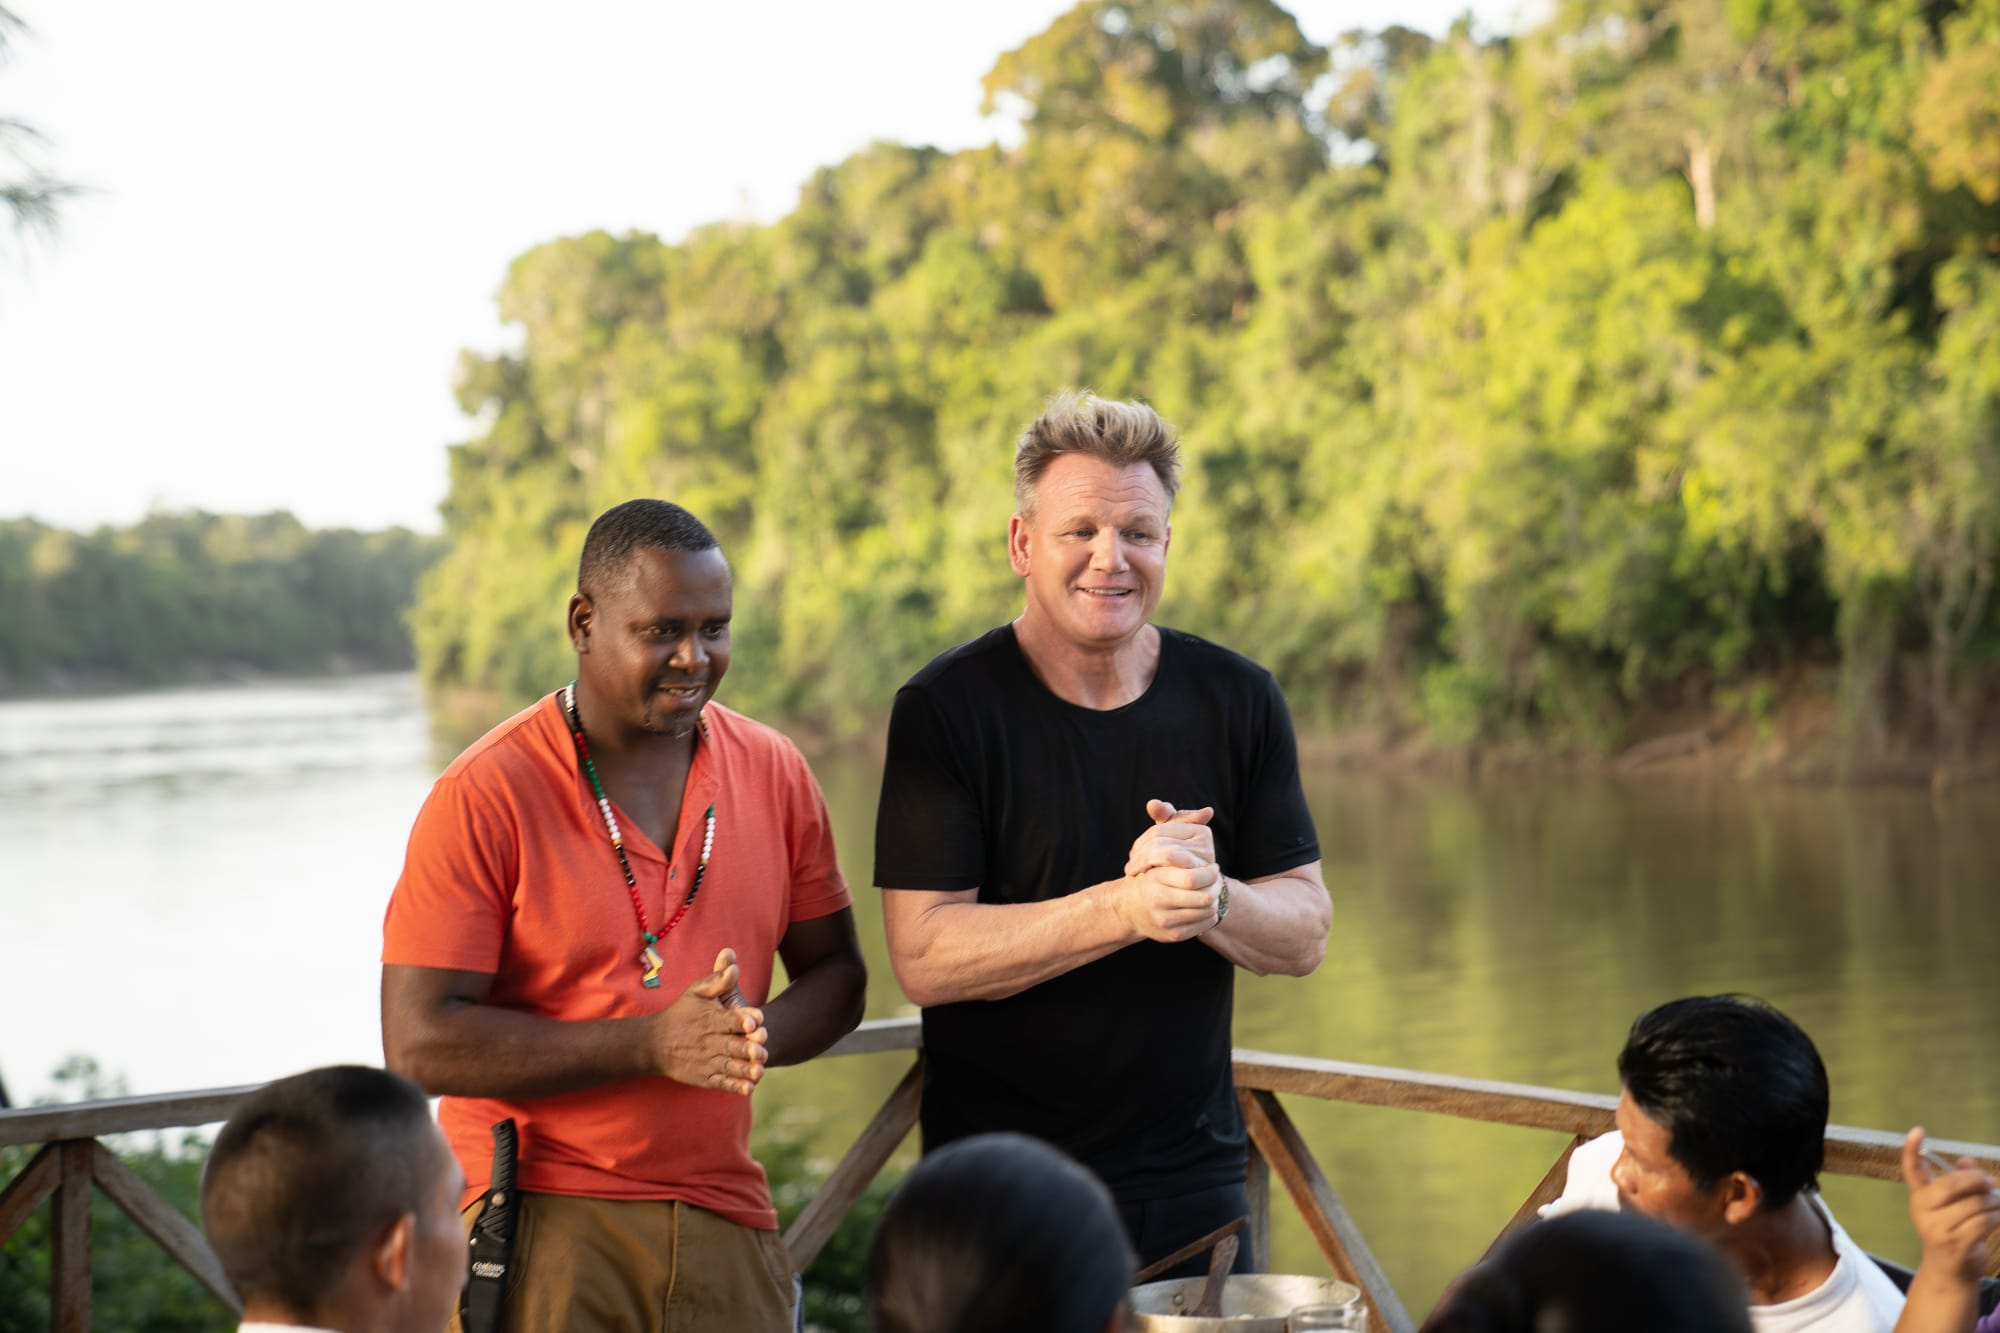 Gordon Ramsay Uncharted Guyana: Fusion cuisine creates unique dishes